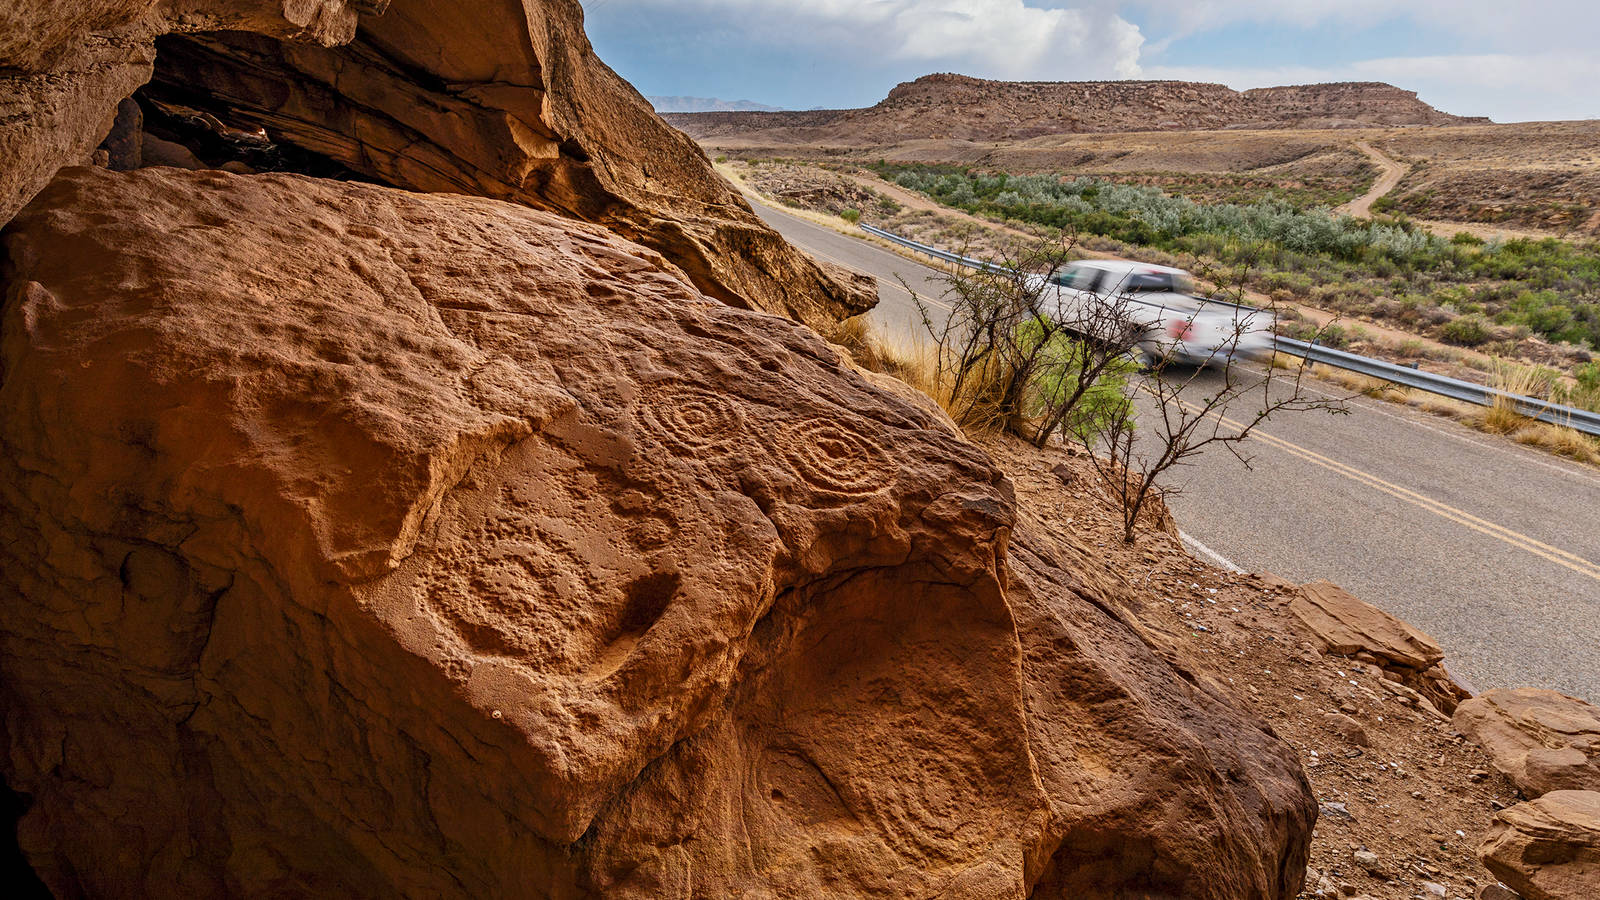 """<h3 style=""""text-align: center; padding: 50px;""""><span class=""""text-Intro-style"""">On the edge of Canyons of the Ancients National Monument in southwestern Colorado, an engraved boulder sits very close to the road, leaving it vulnerable to vandalism and plunder. © STEPHEN ALVAREZ</span></h3>"""